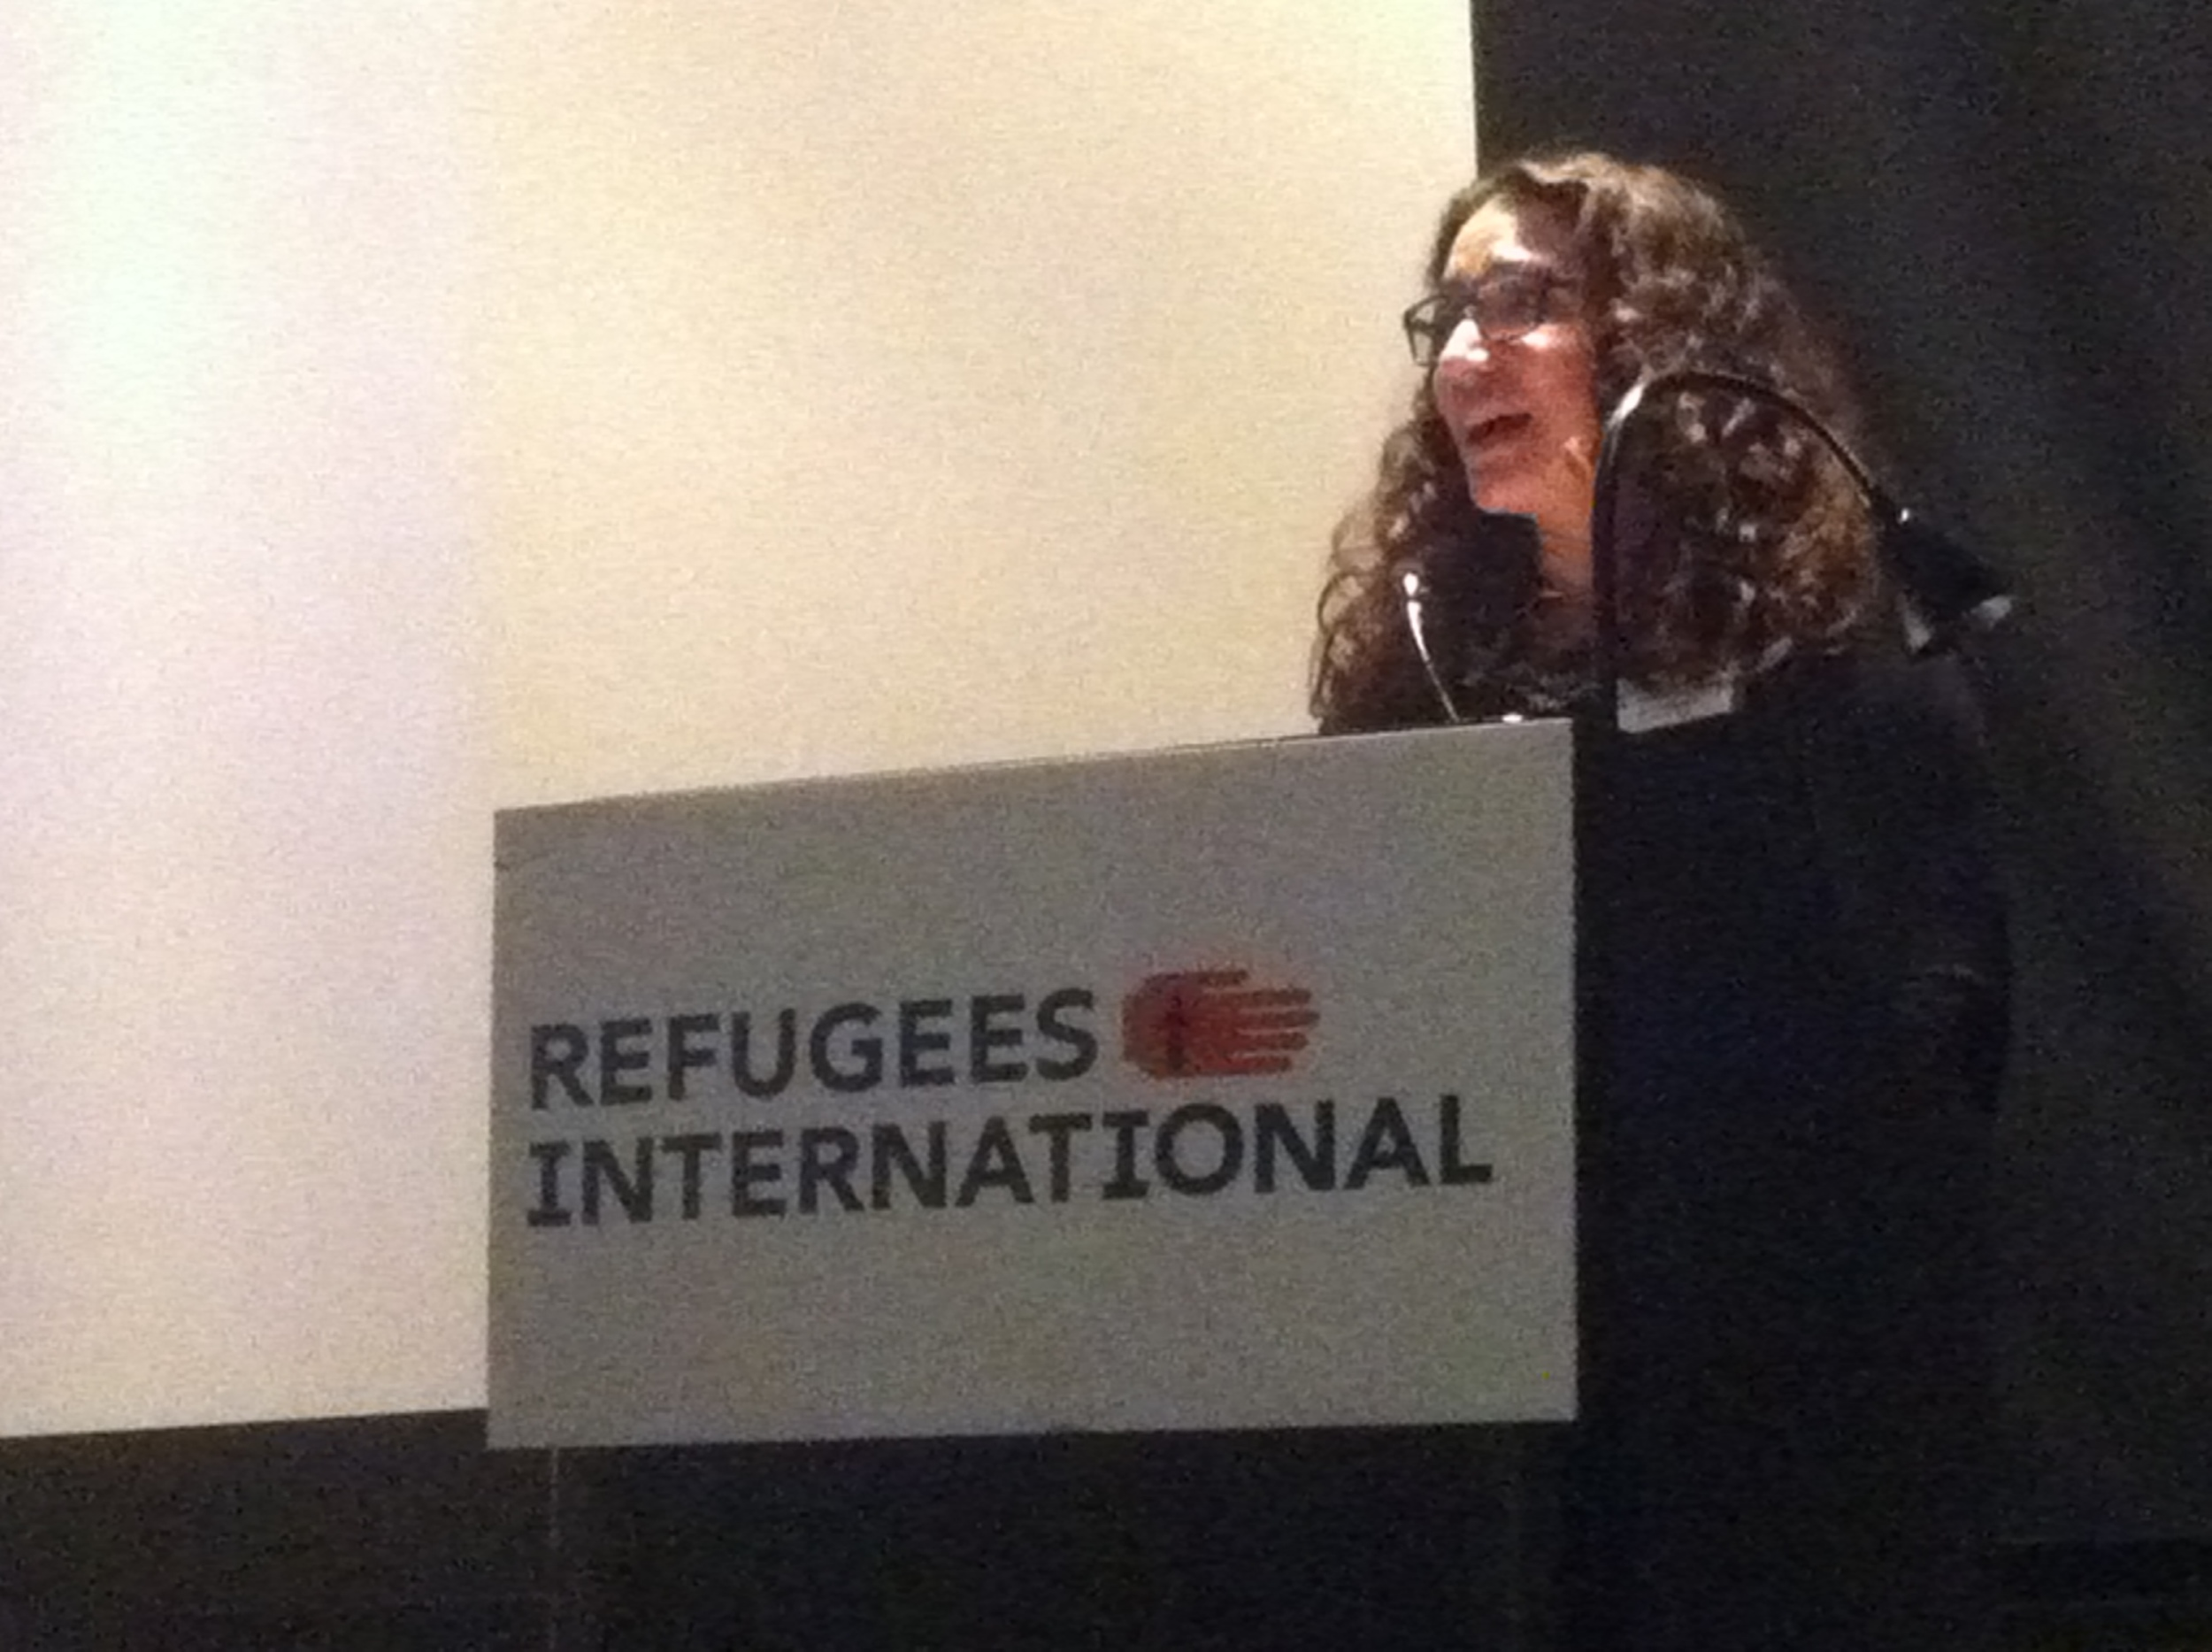 RI Senior Advocate Marcy Hersh tells the audience of the poor planning that often occurs when creating camps for Syrian refugees in neighboring countries, and how women and girls are among the most affected.